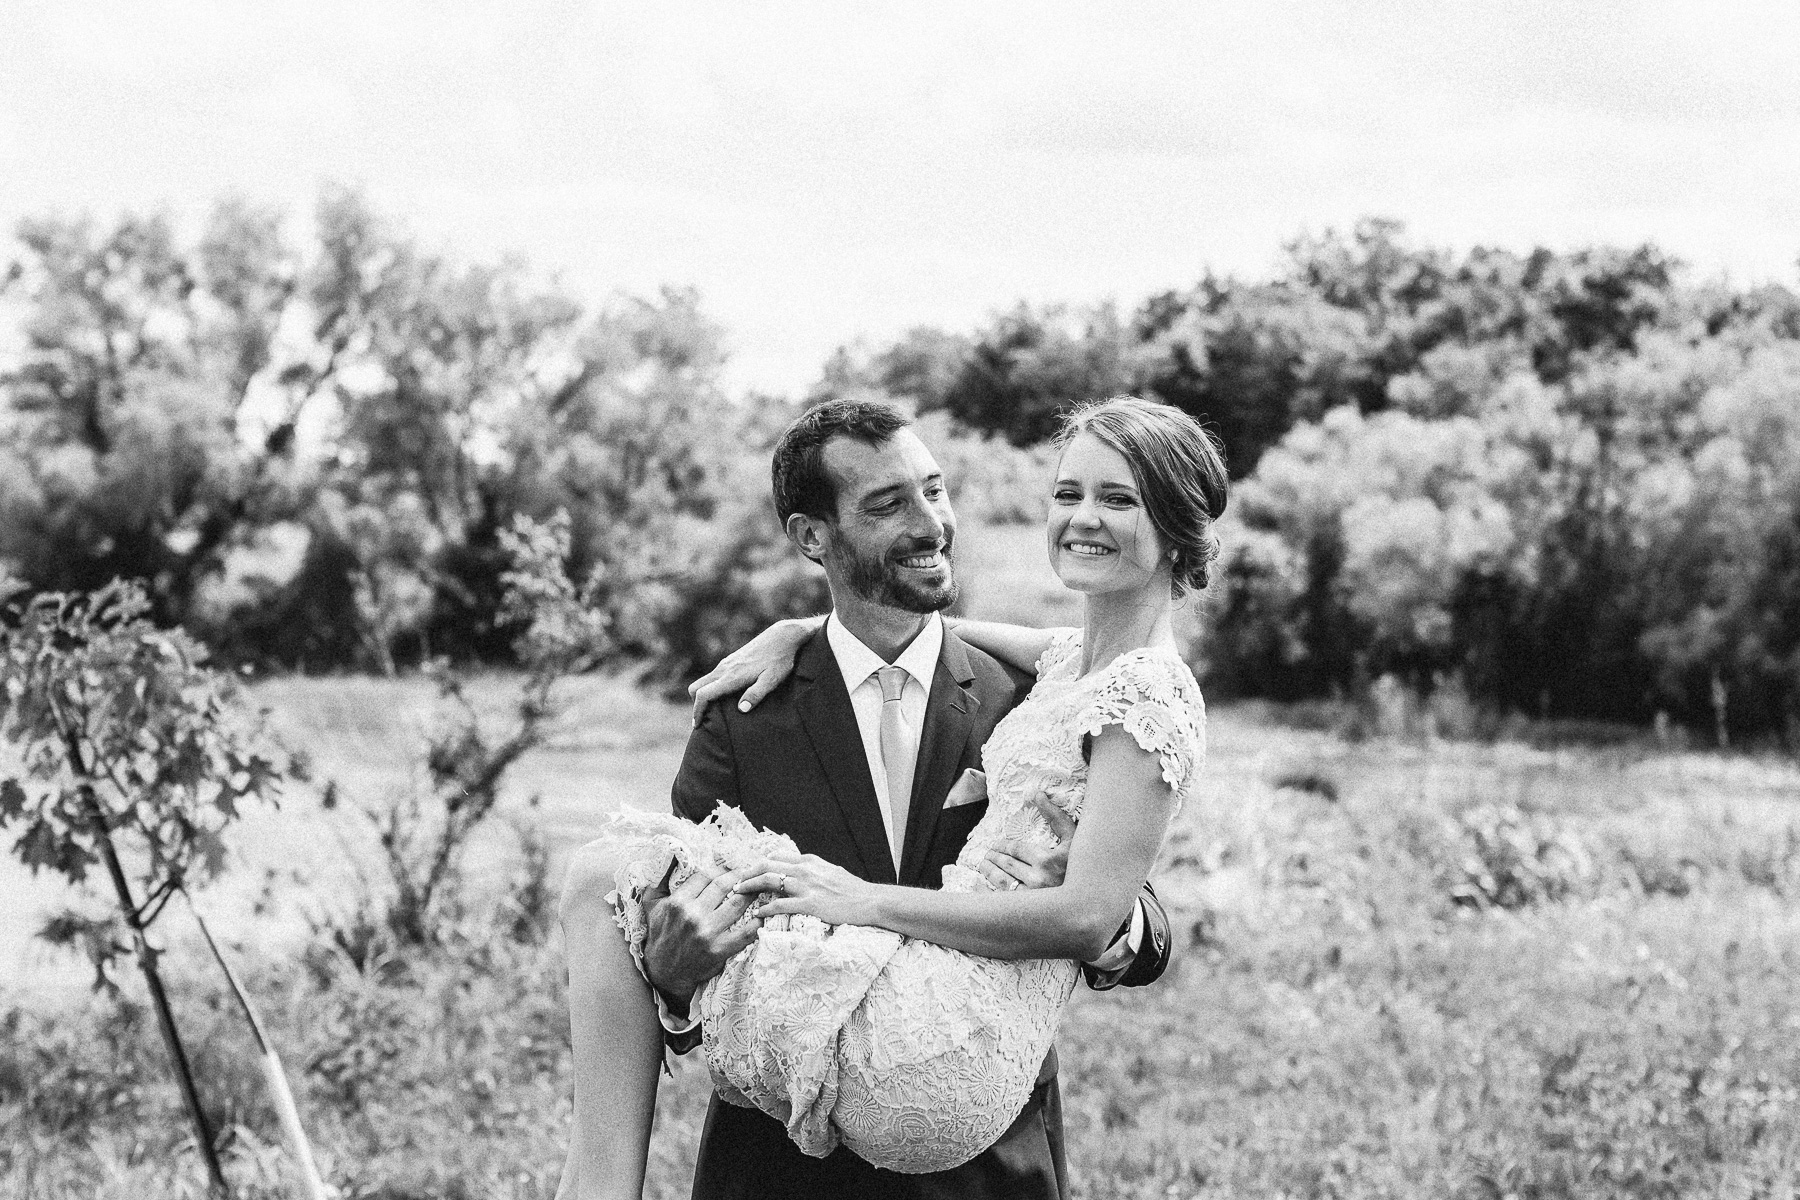 Groom Holding Bride over Grass